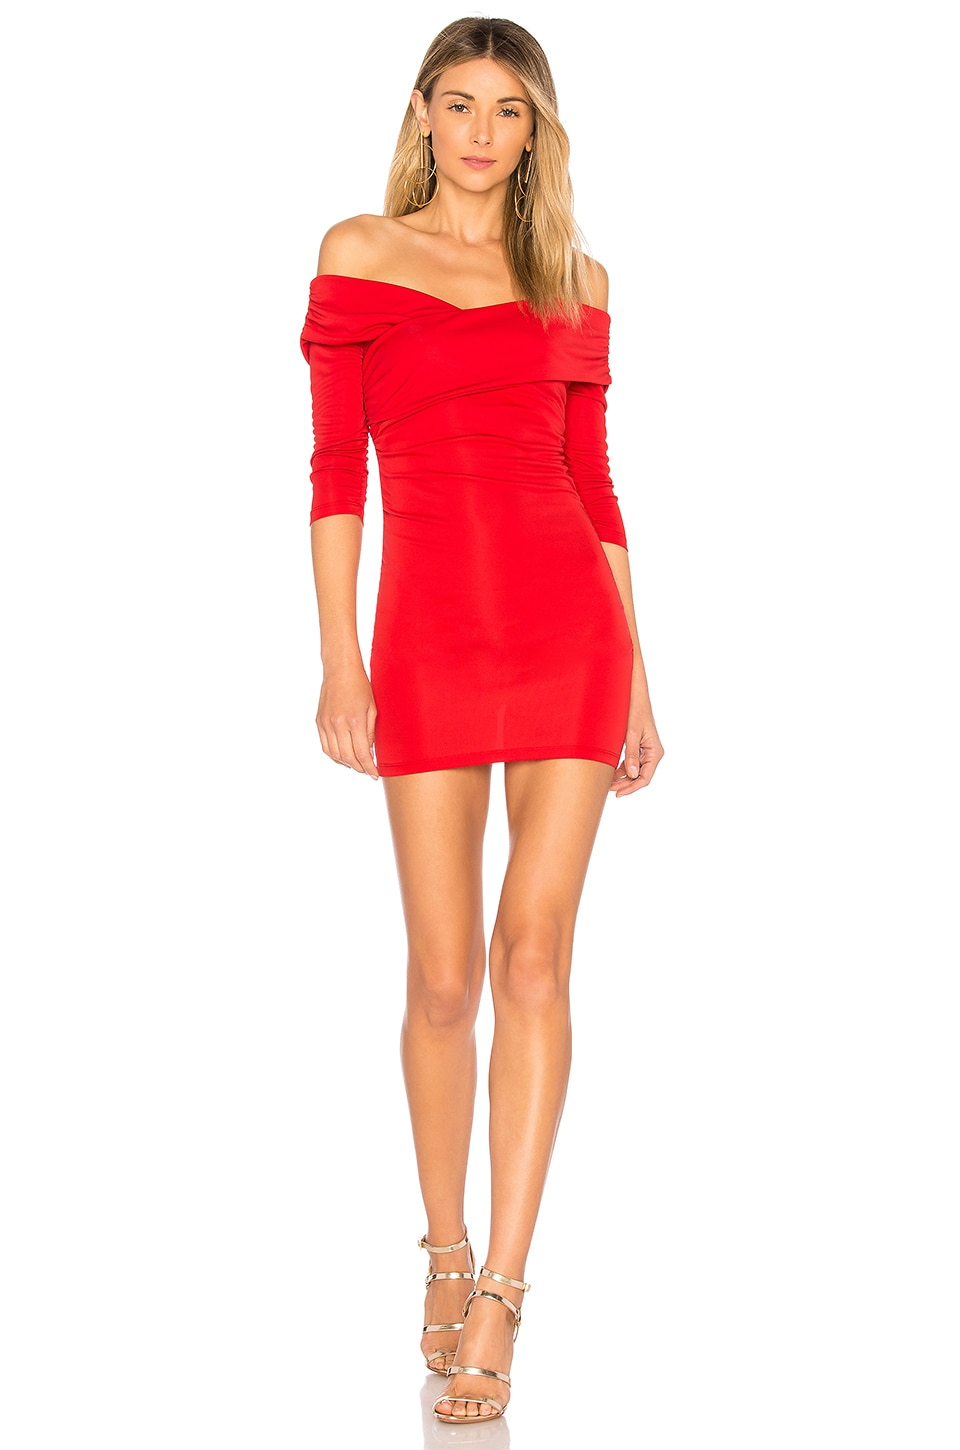 MAJORELLE Cypress Dress in Red